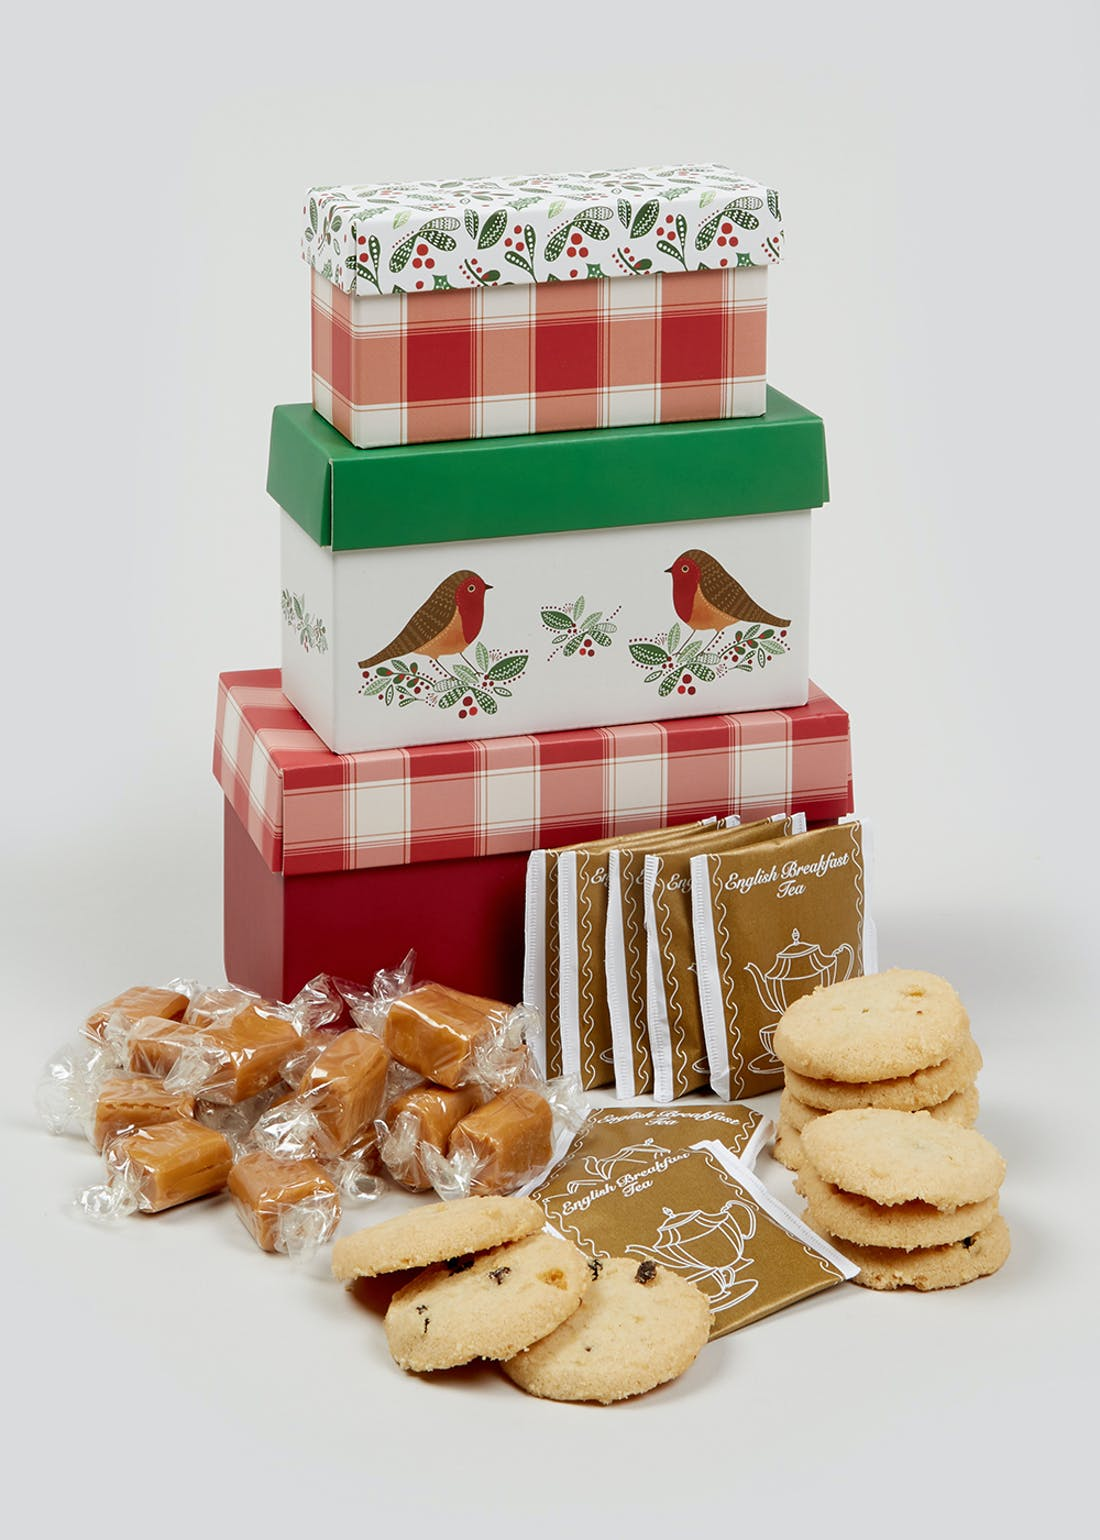 Christmas Afternoon Tea Gift Stack (24cm x 16cm x 8cm)